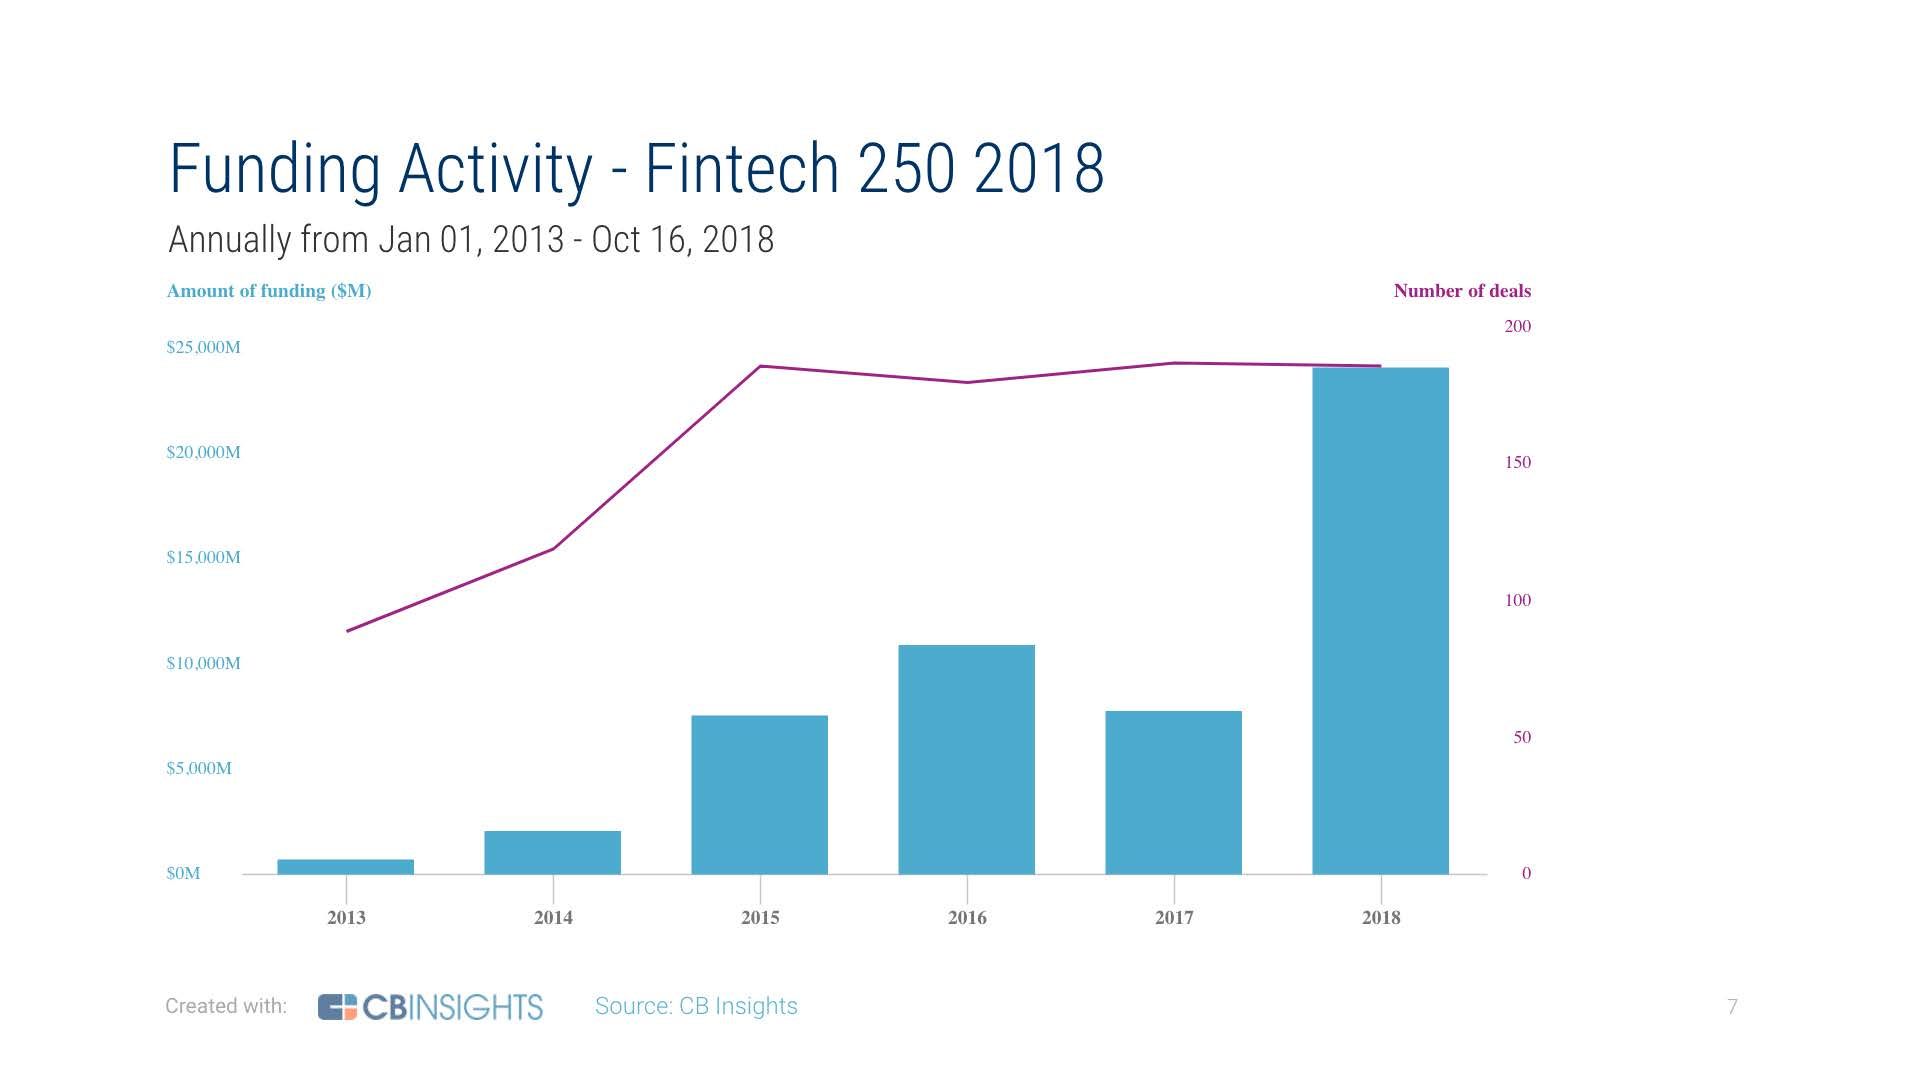 The largest investment in 2018 on top 250 fintech startups was at $ 25 billion.